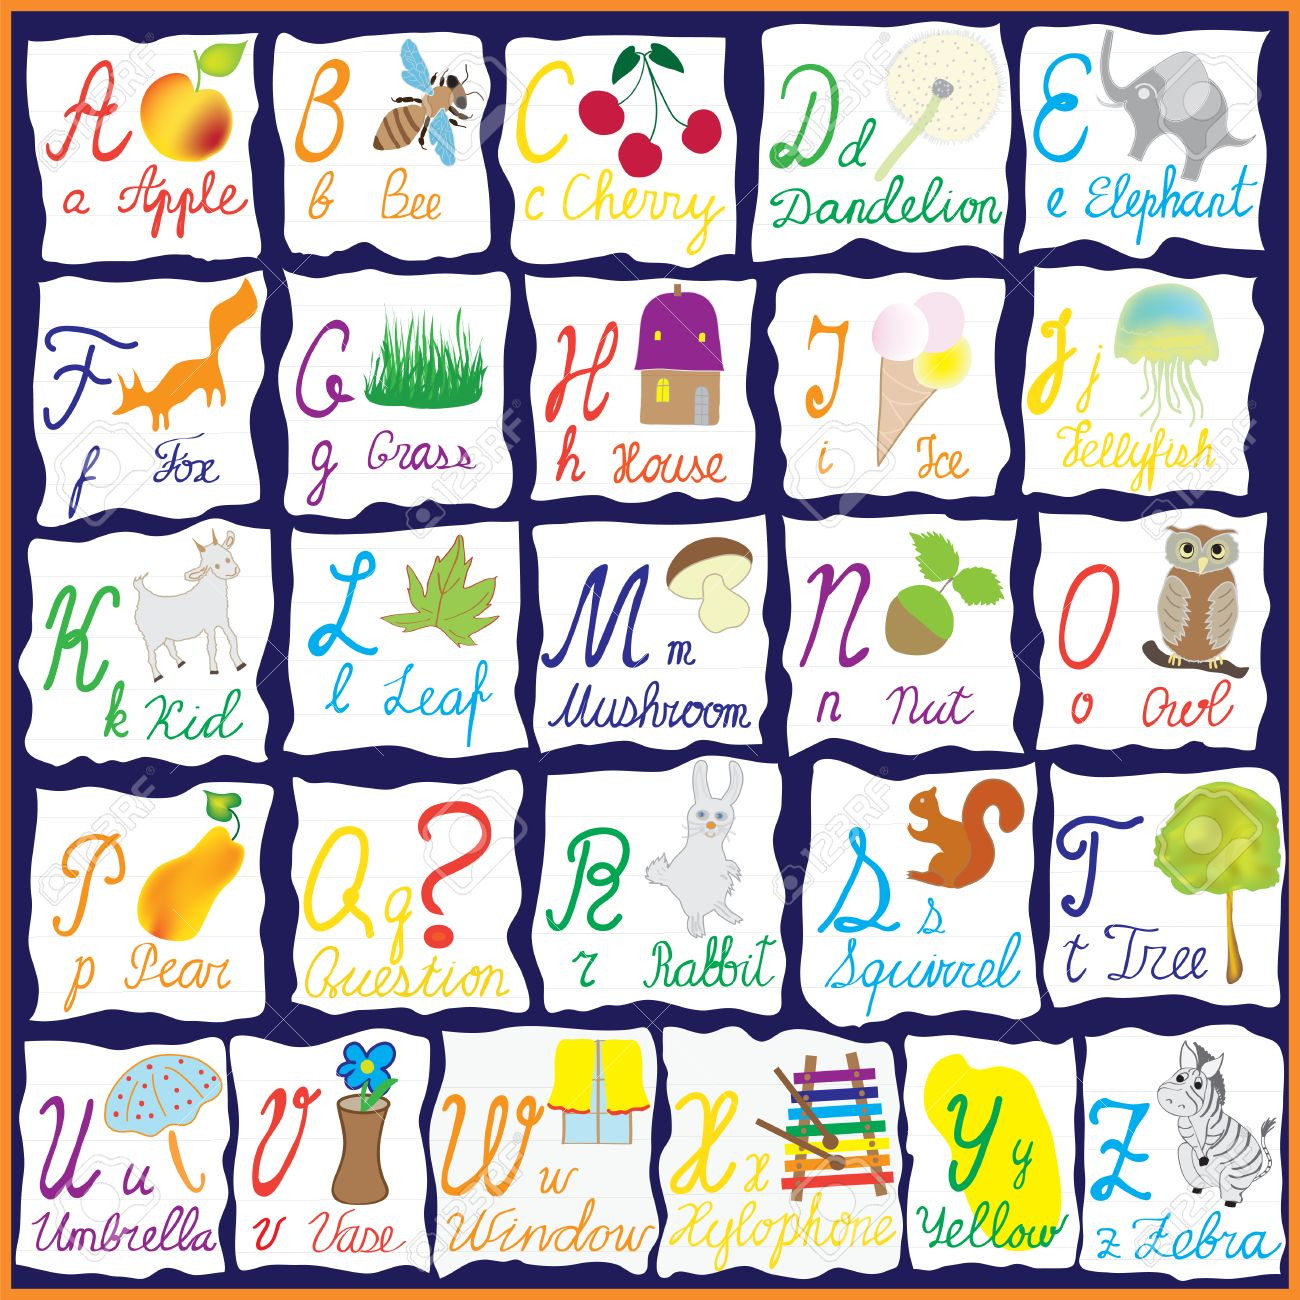 english colorful alphabet with letterswords and pictures isolated on scraps of notebook paper stock